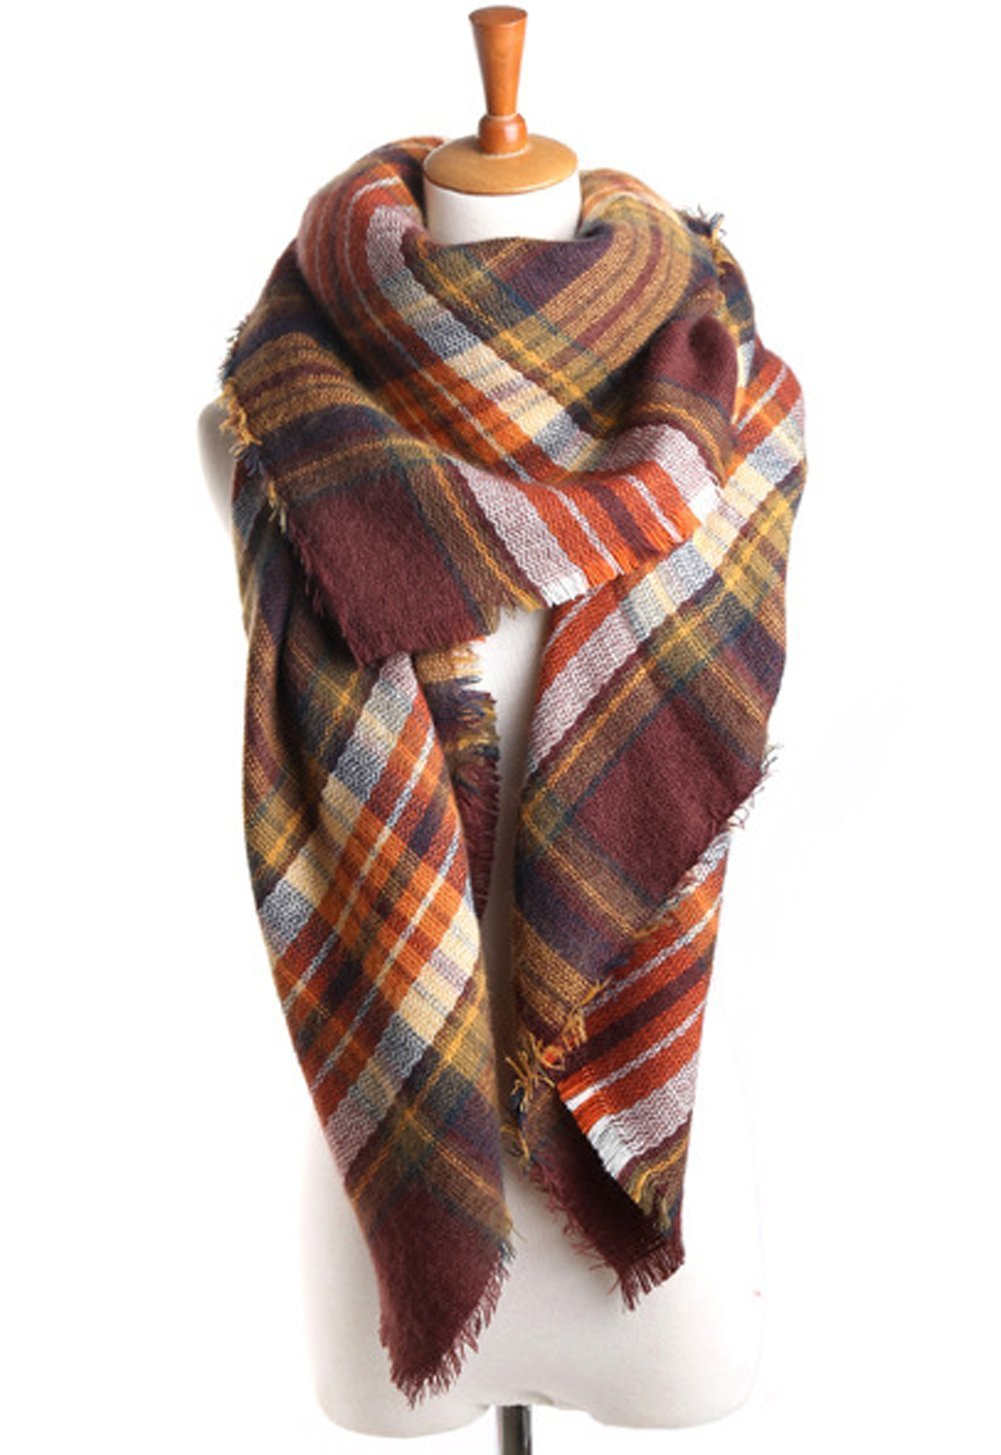 Women's Winter Soft Plaid Tartan Checked Scarf Large Blanket Wrap Shawl